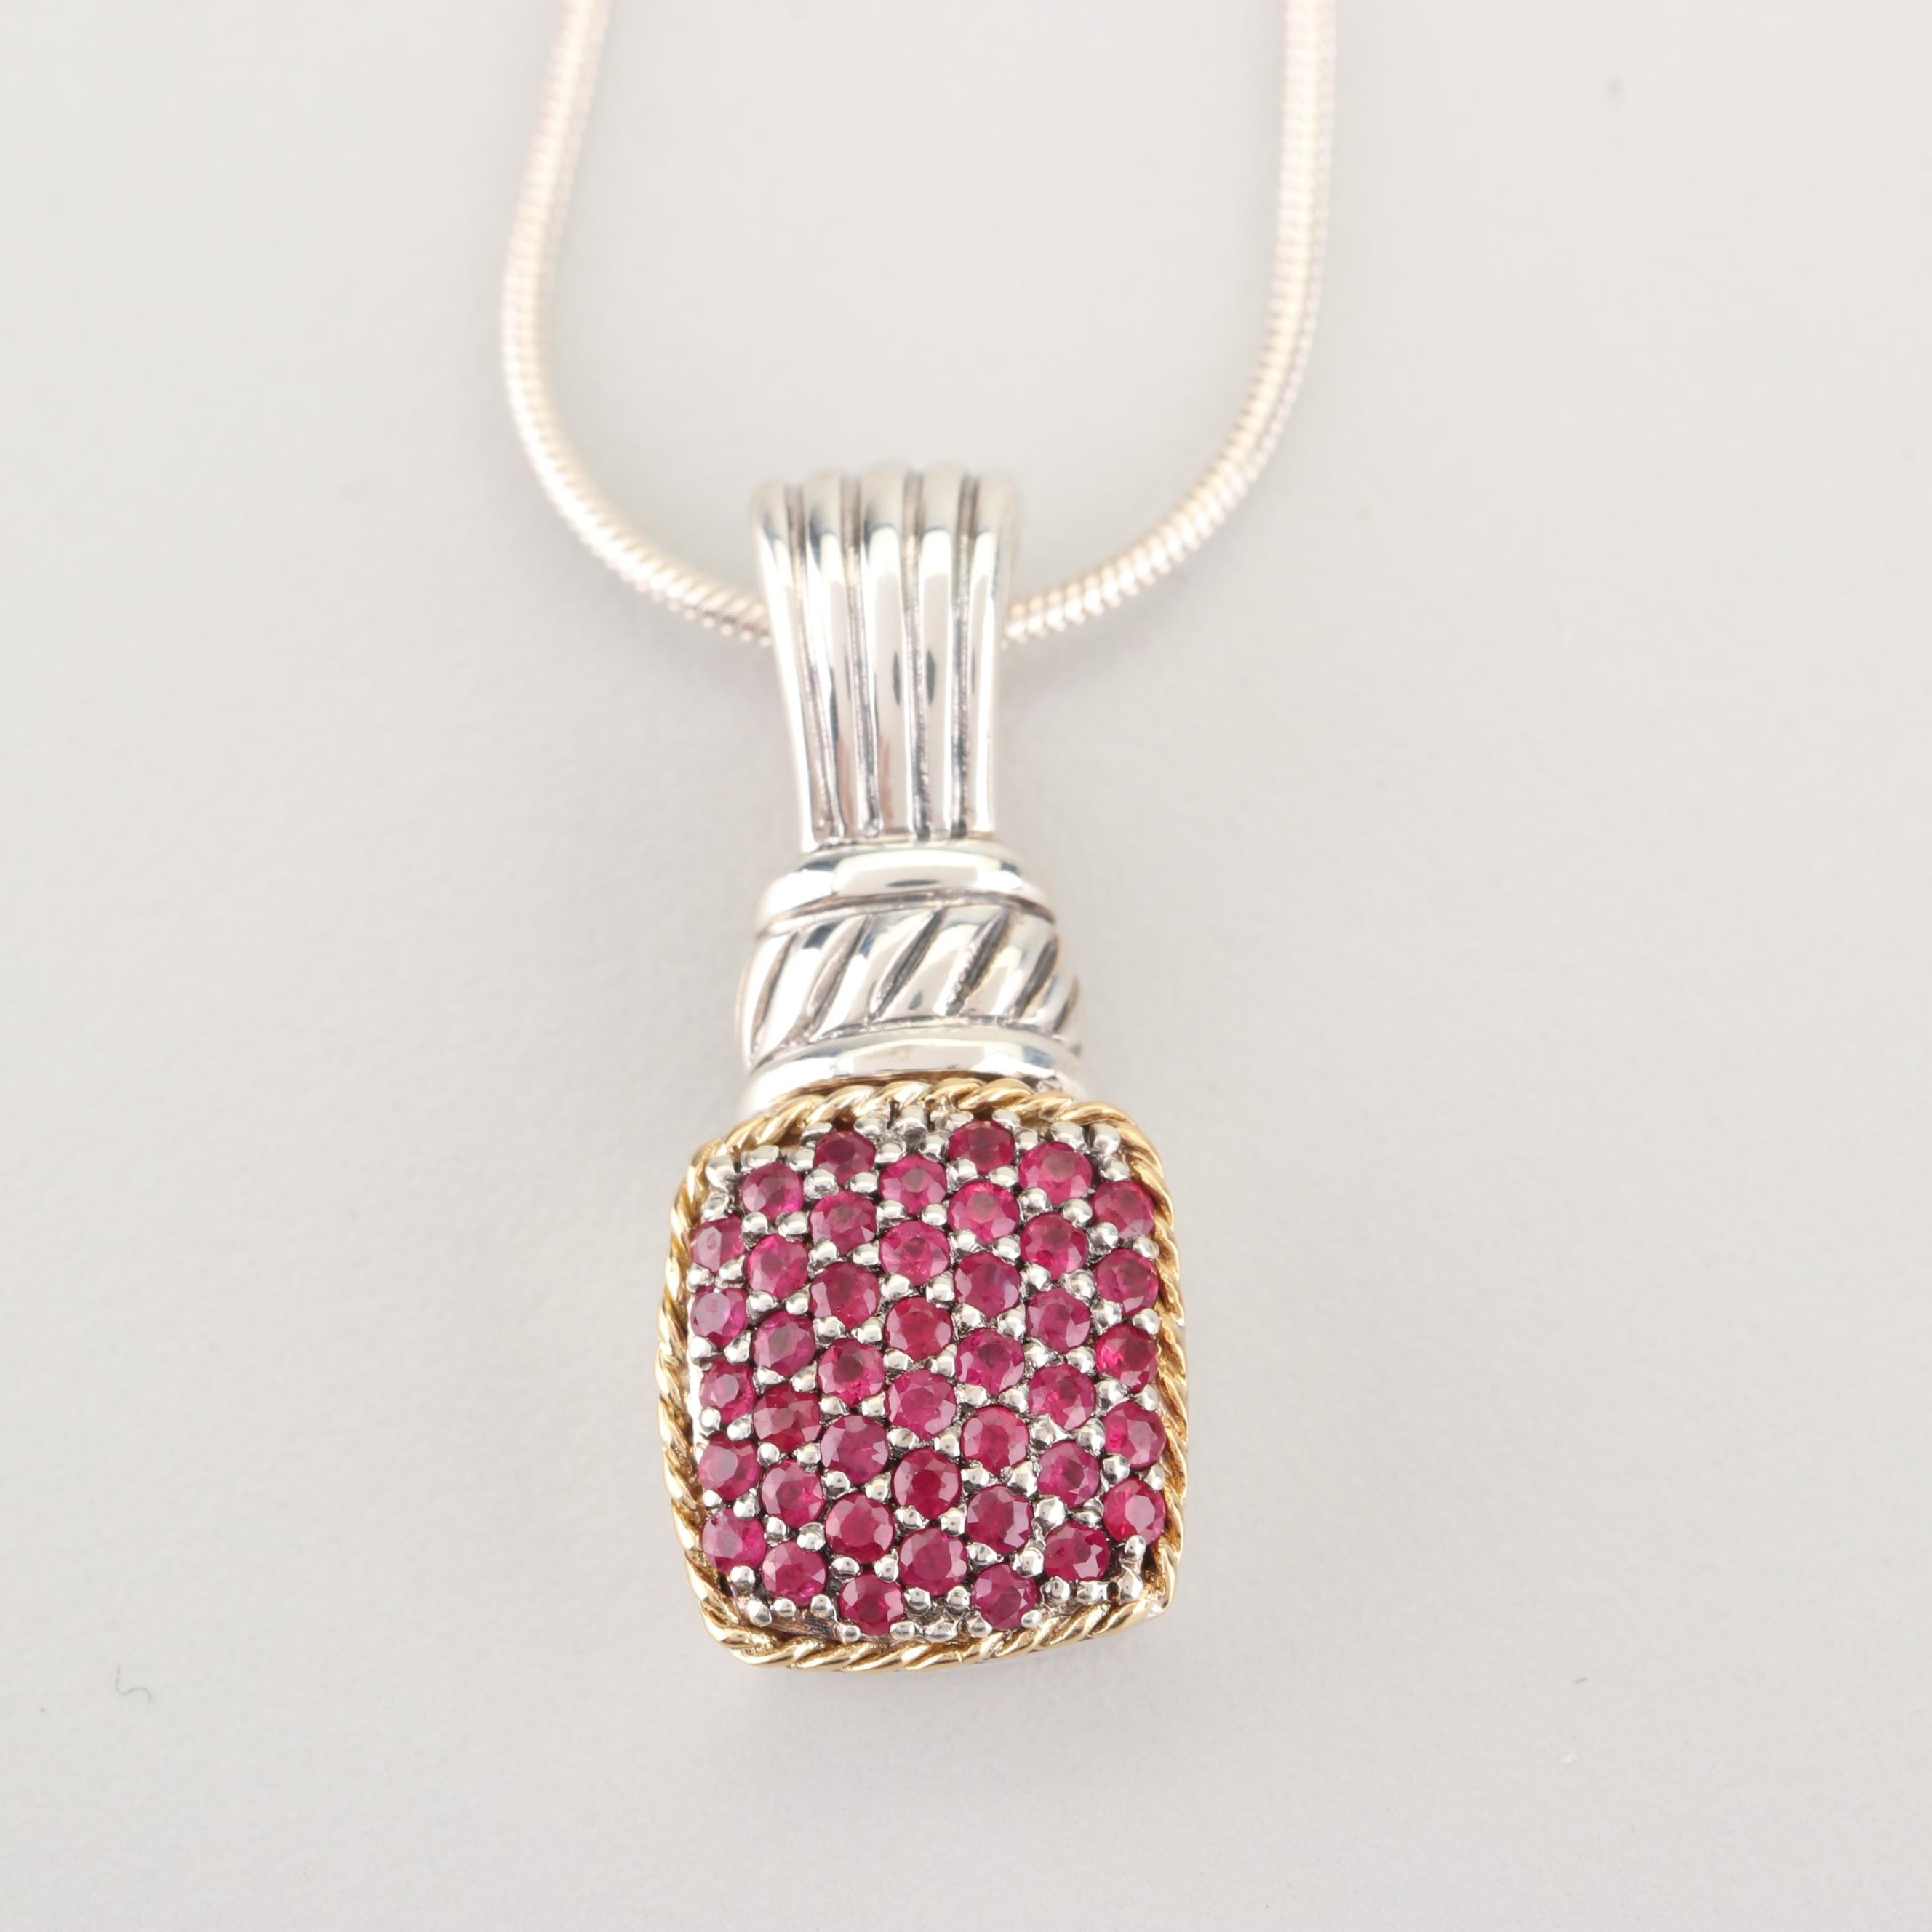 EFFY 18K Yellow Gold Accented Sterling Silver Ruby Pendant Necklace